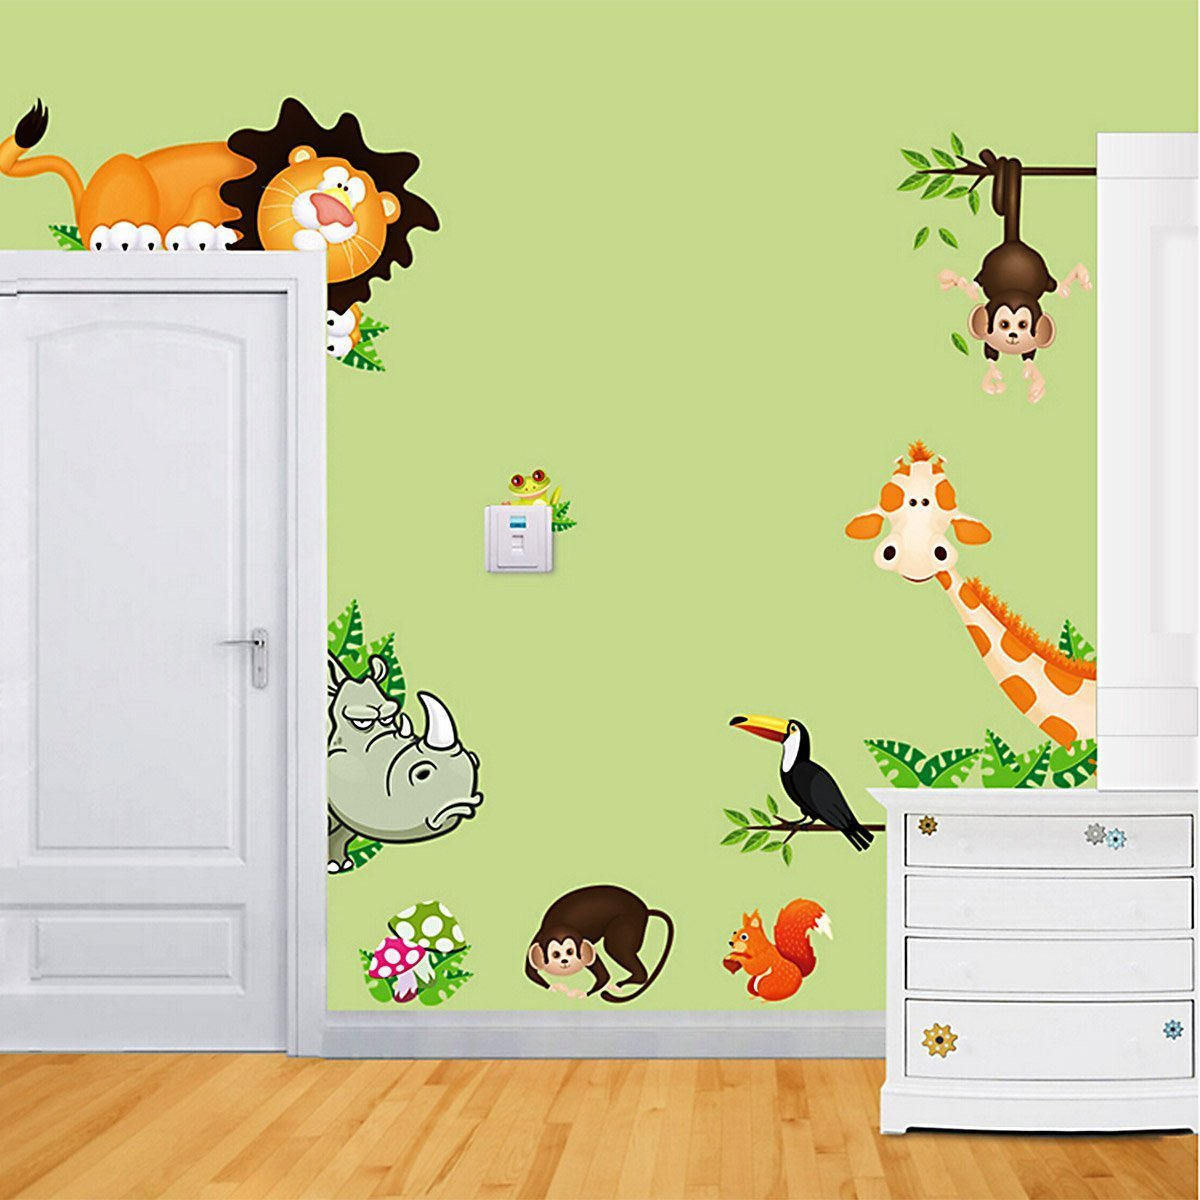 JoyGood DIY Removable Wall Decal Giraffe Monkey Lion Zoo Wall Sticker Art Home Decoration for Living Room Nursery Baby Children's Room Bedroom ZOOYOO 001